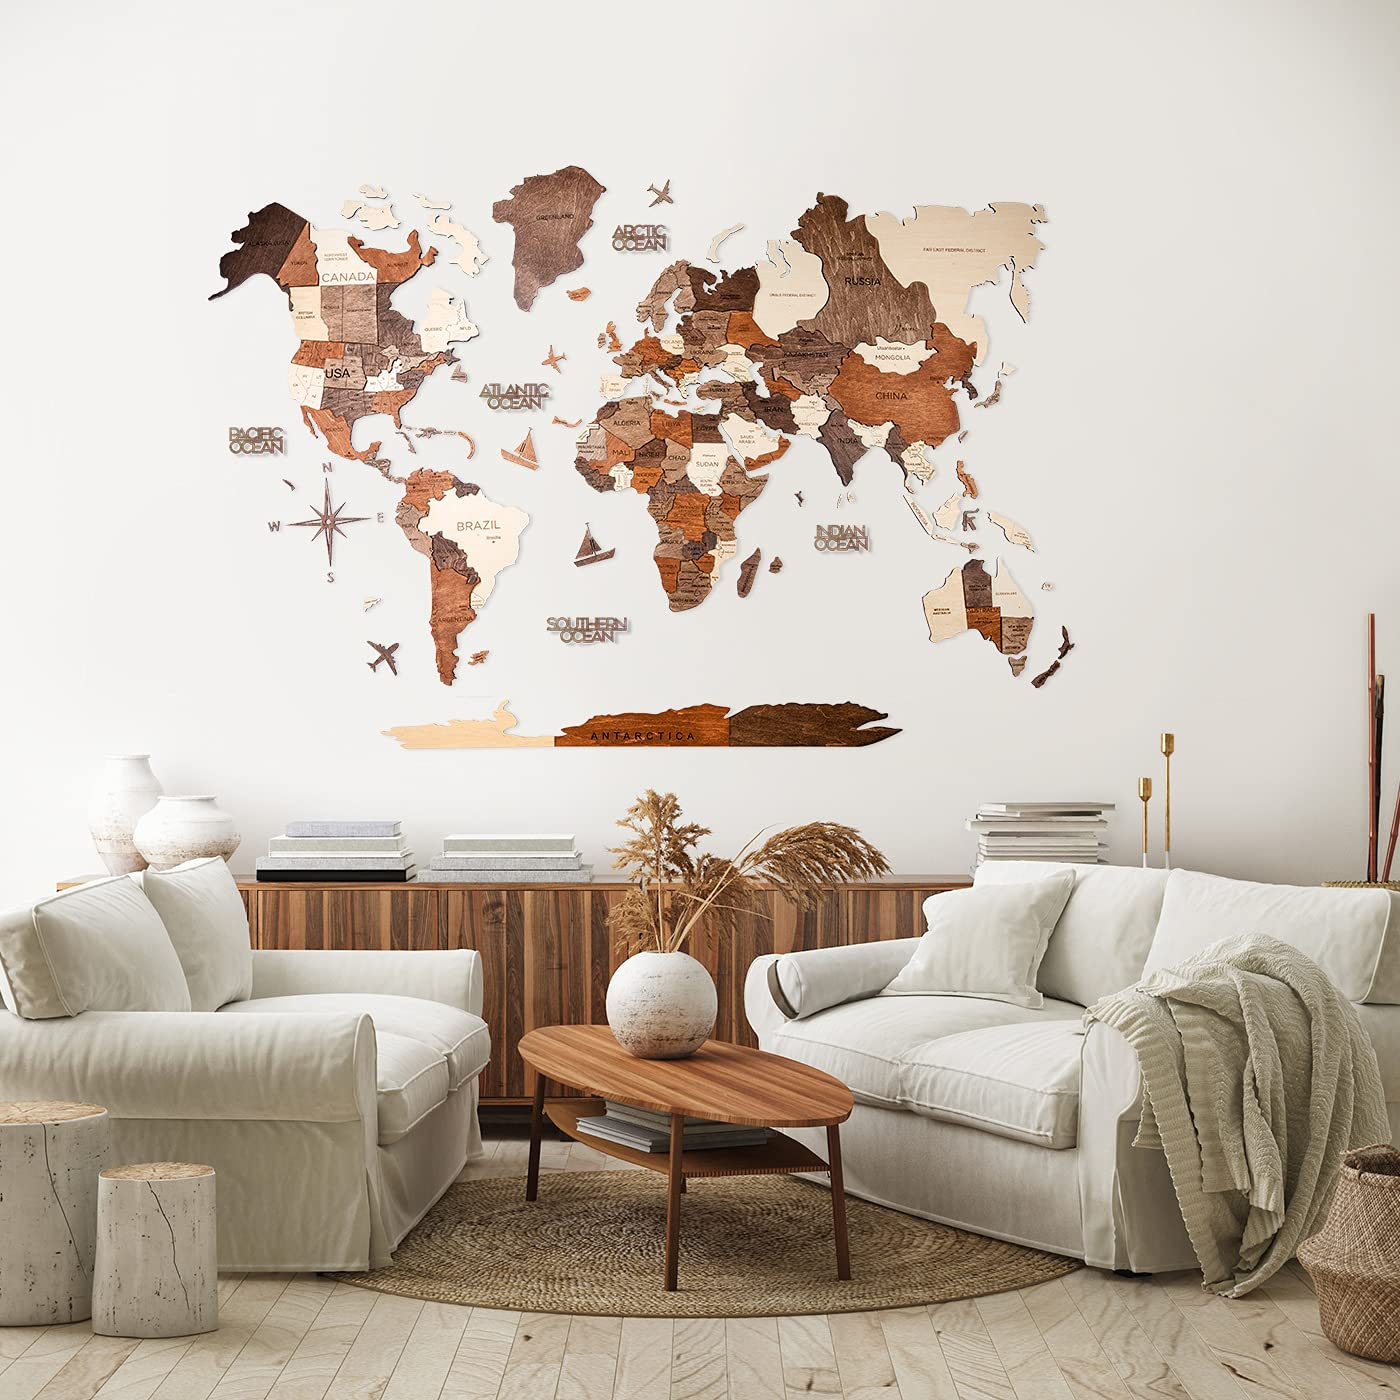 3D Wood World Map Wall Art Large Wall Décor - World Travel Map - Any Occasion Gift Idea - Wall Art For Home & Kitchen or Office (Medium, Prime, Multicolored)